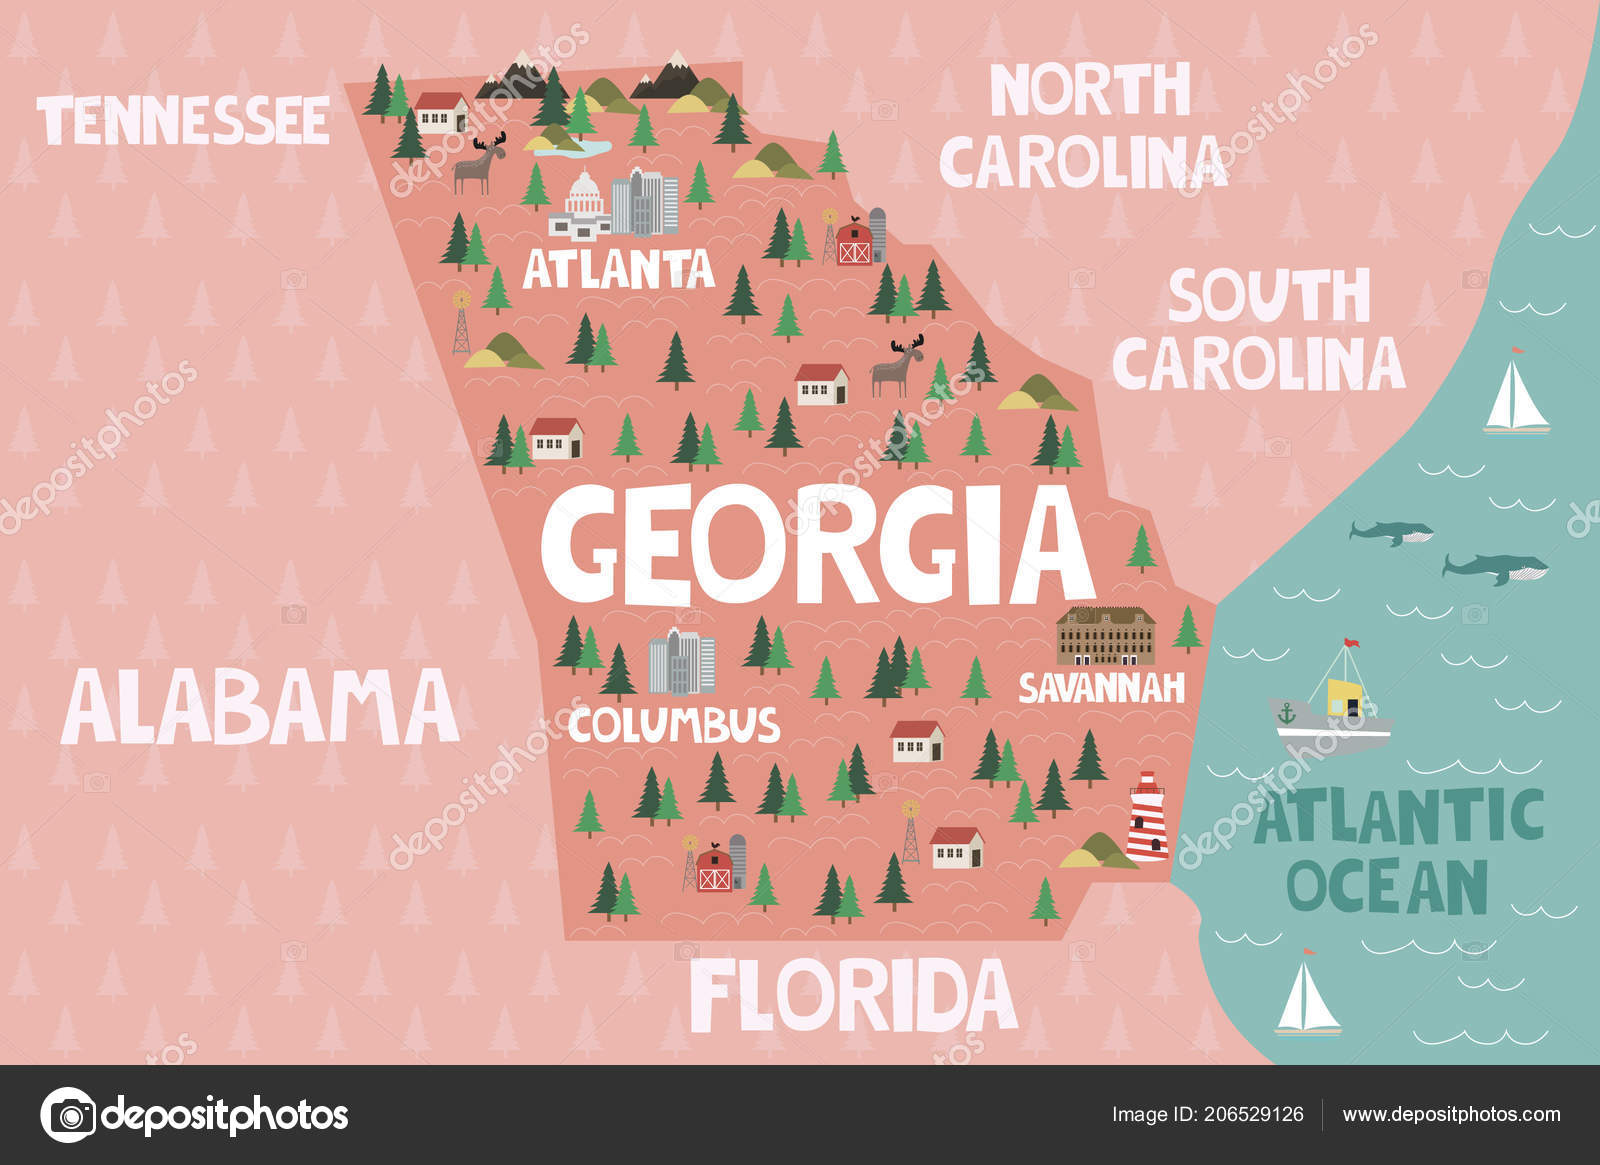 Map Of Florida And Georgia Cities.Illustrated Map State Georgia United States Cities Landmarks